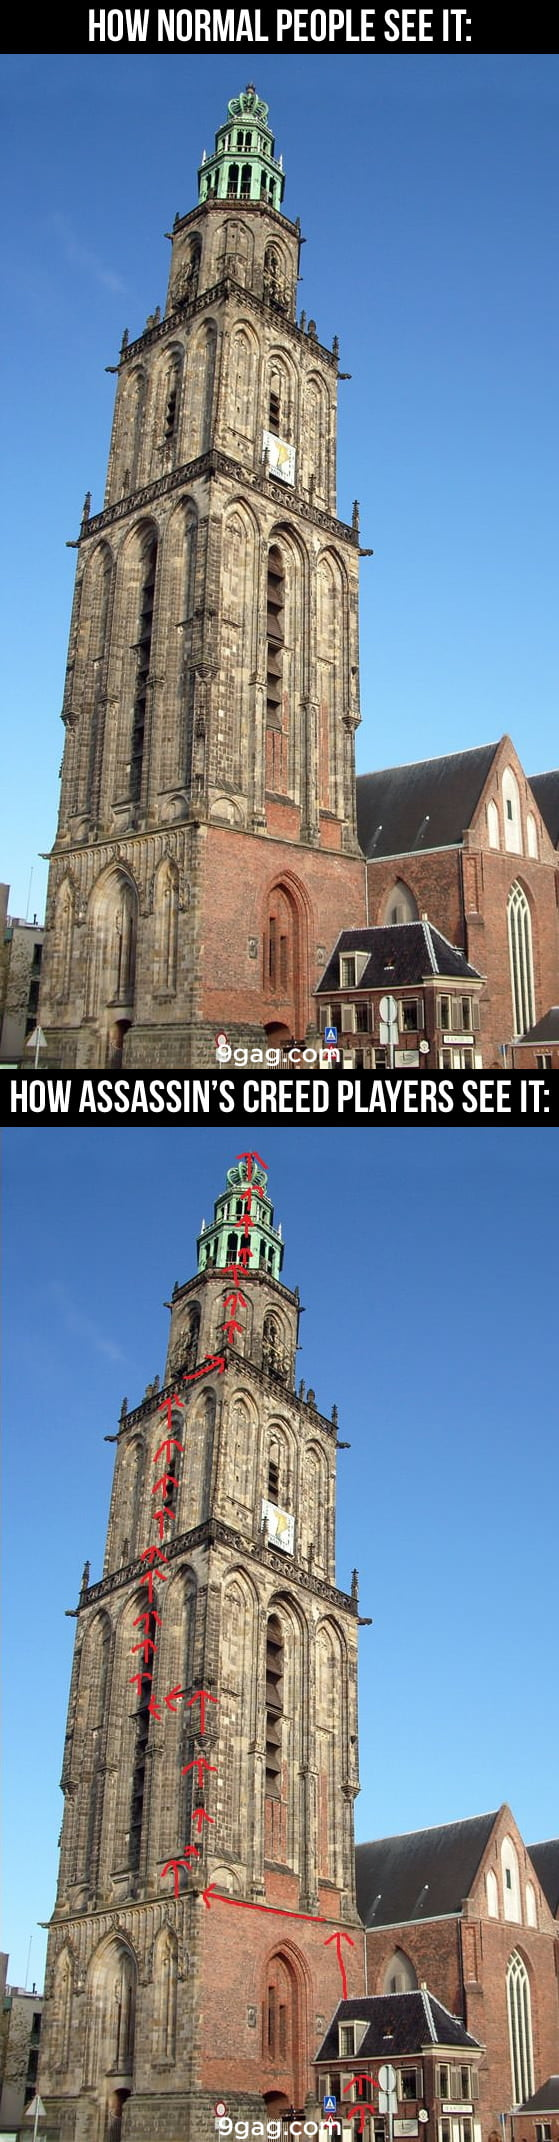 Assassin's Creed Perspective